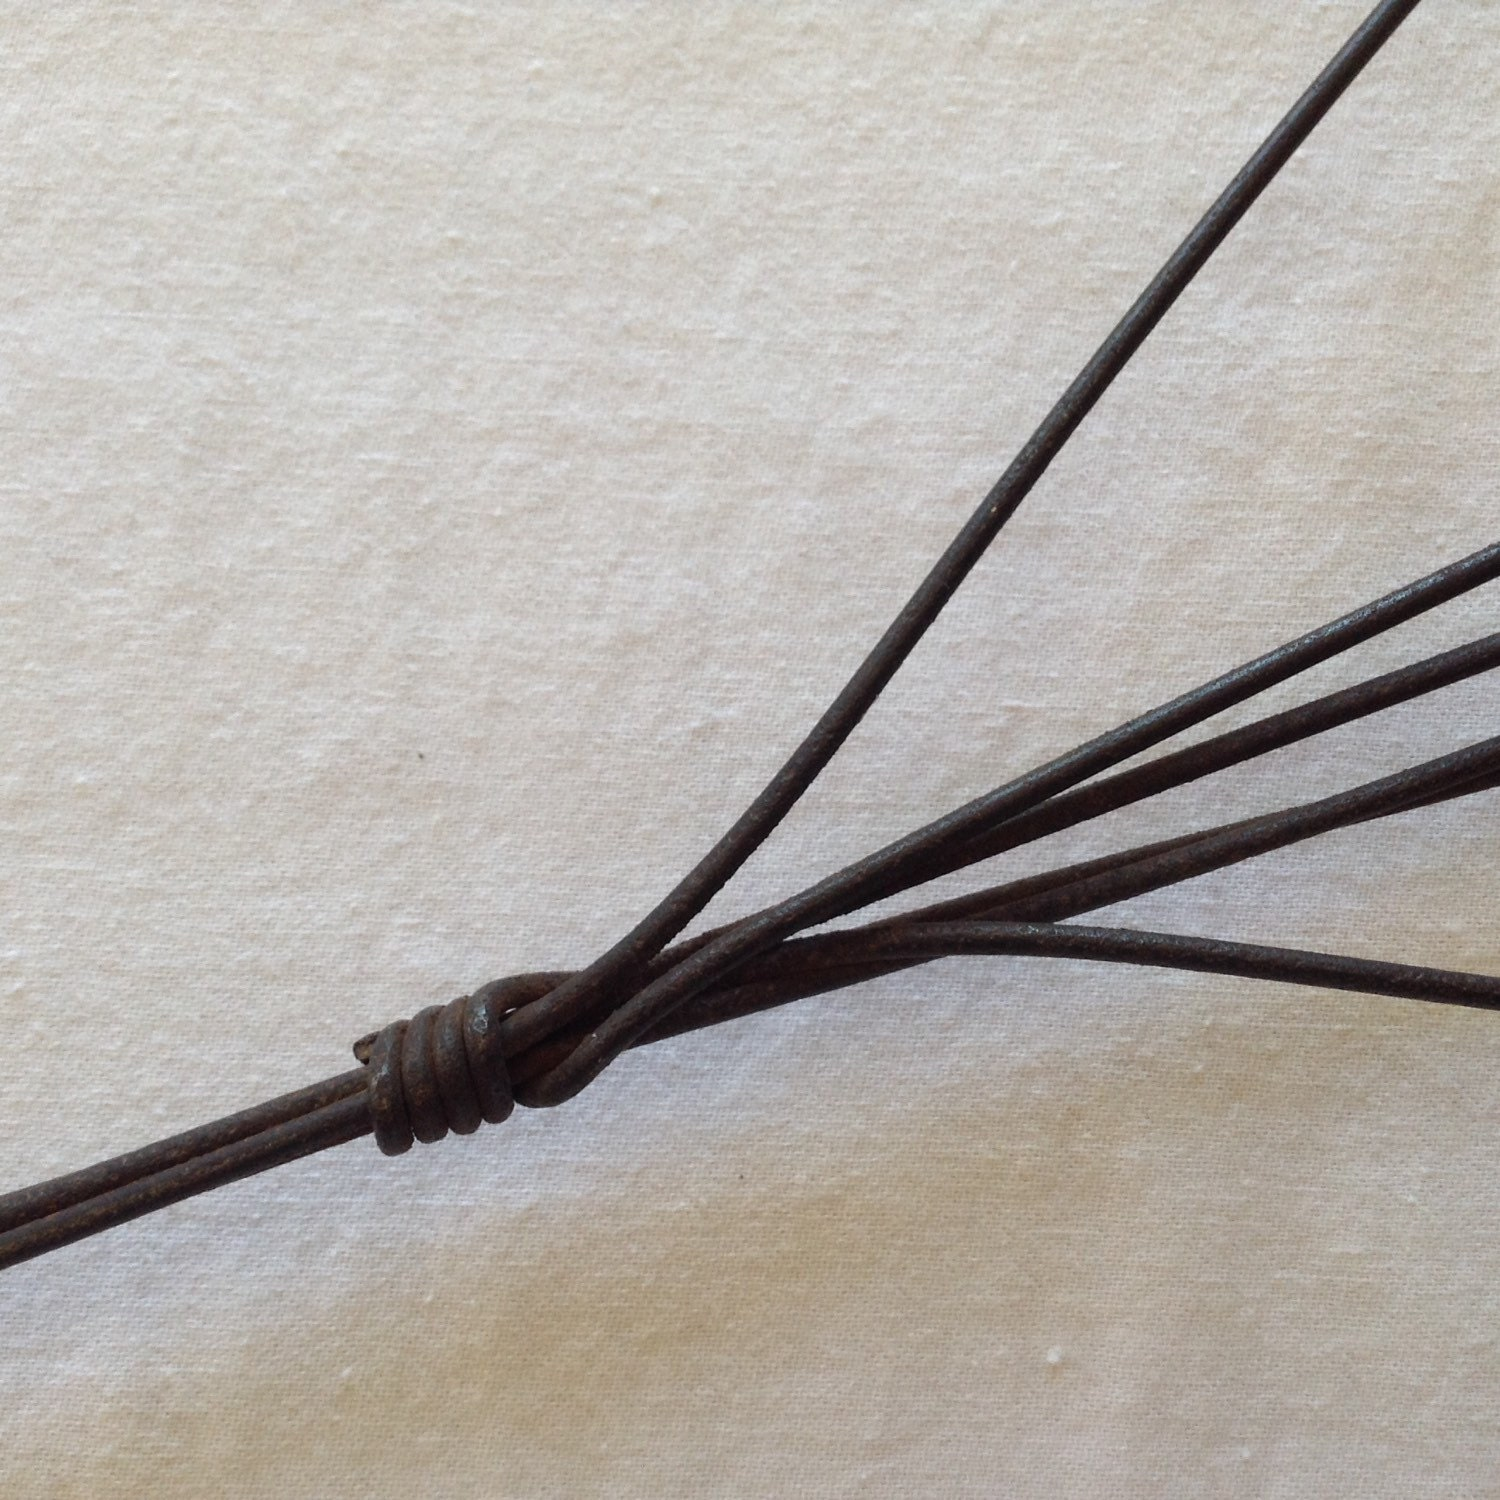 Antique Carpet Beater 30 Wood And Looped Metal By